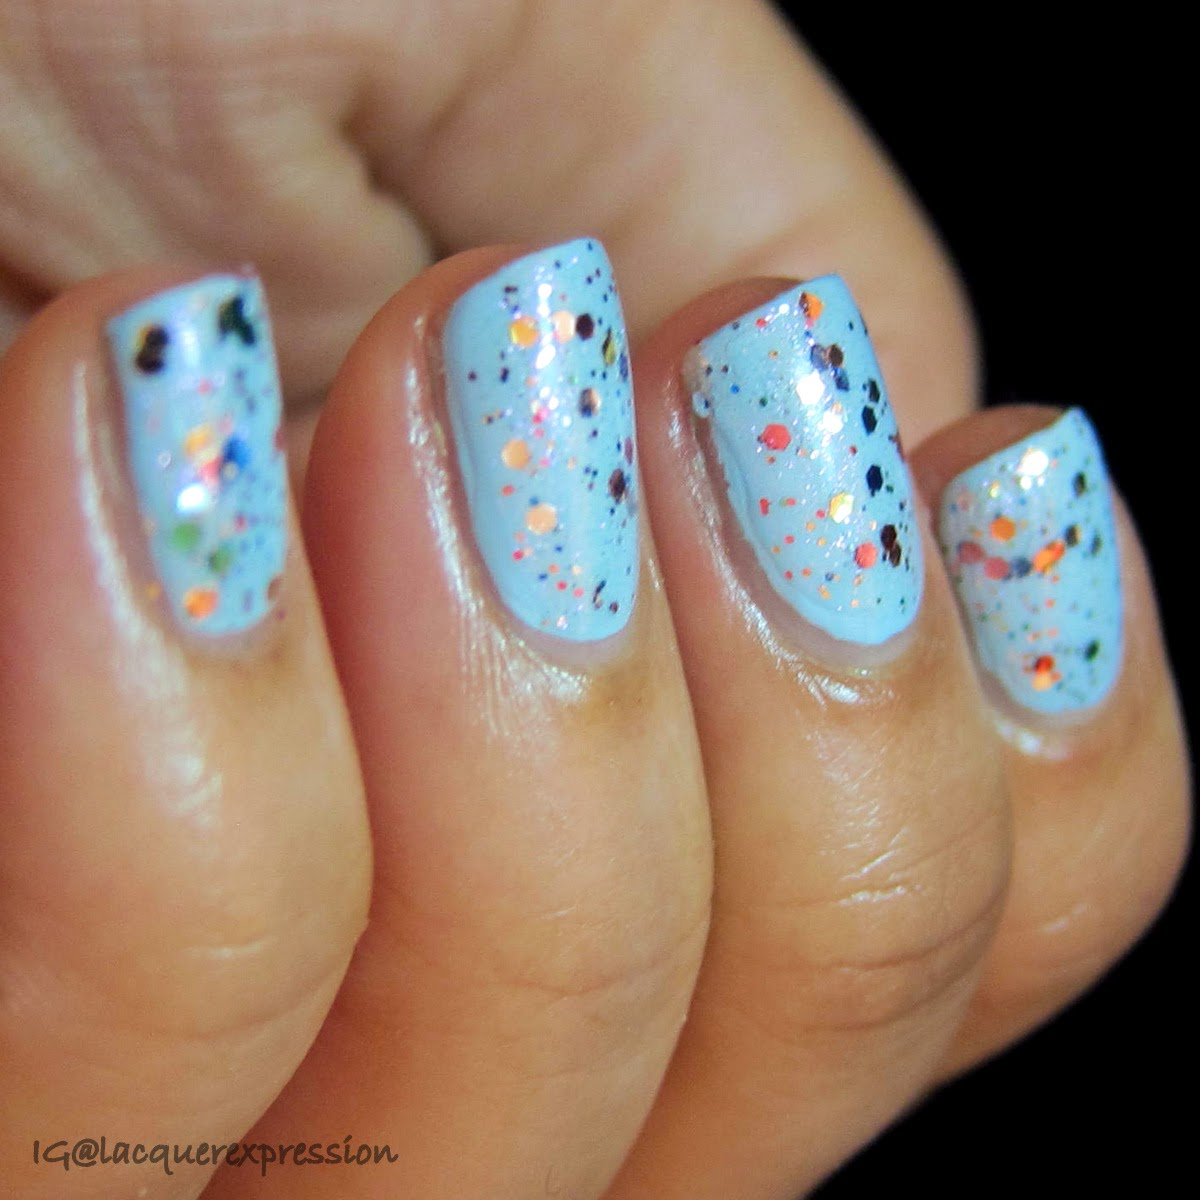 swatch of glitterbomb nail polish by orly